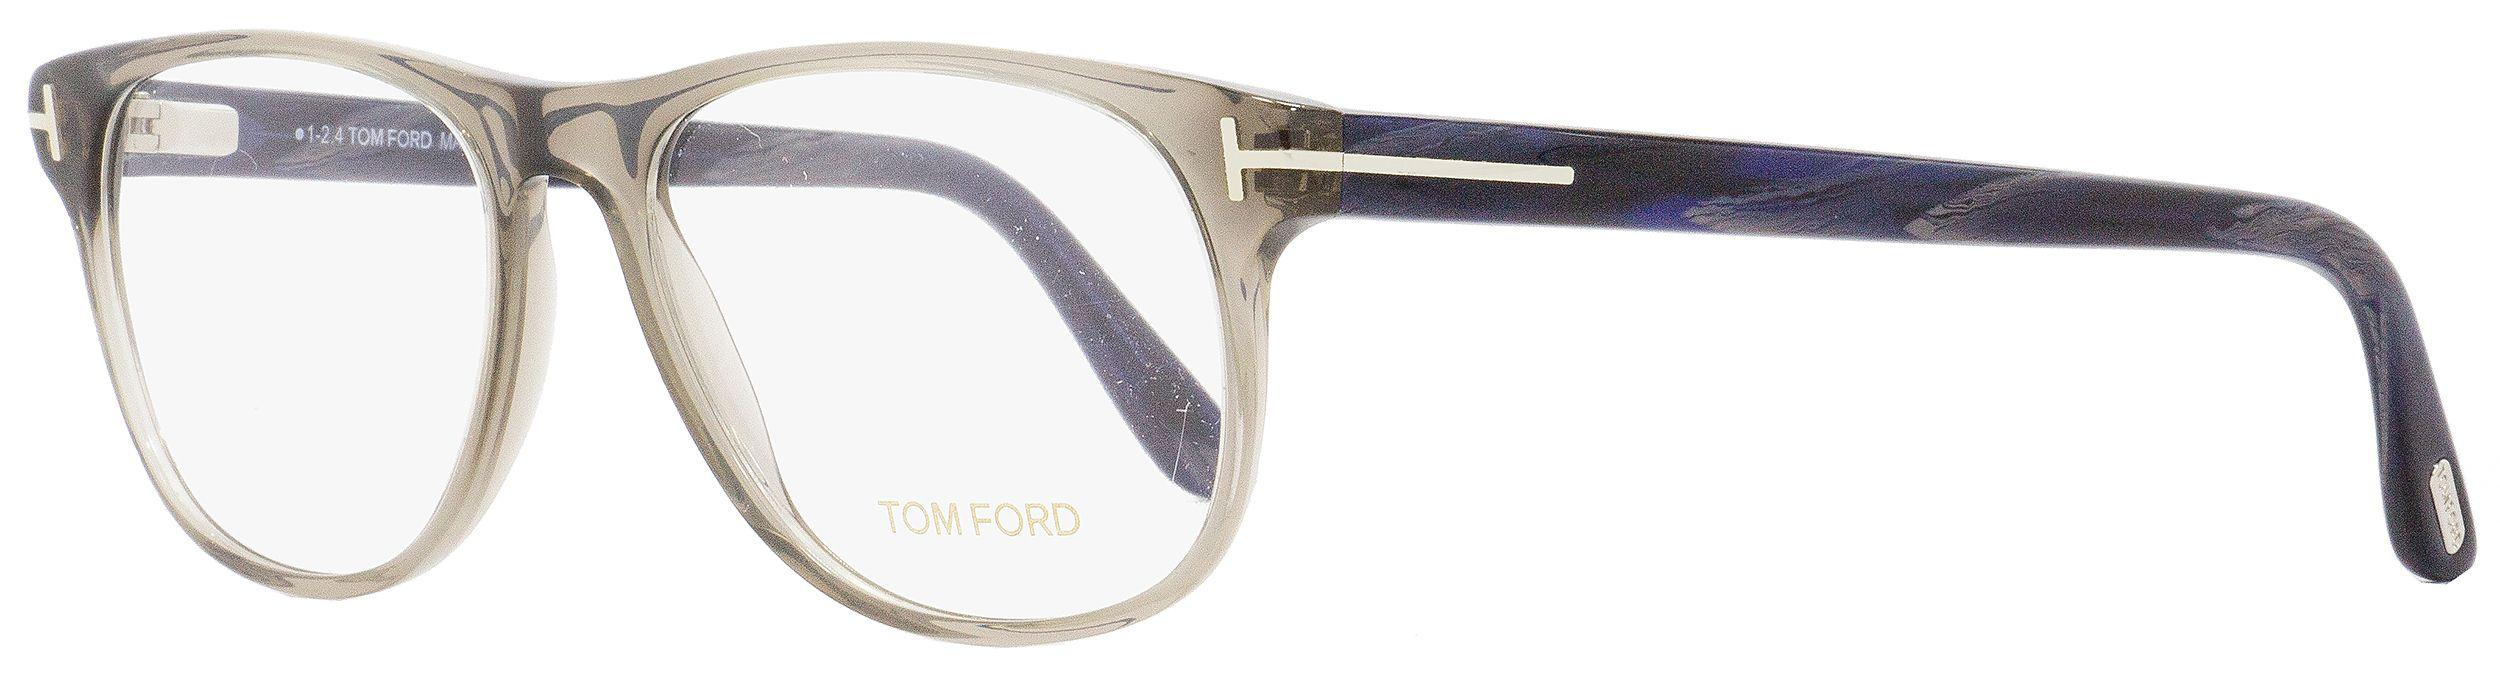 eac0fd4f16 Tom Ford - Multicolor Oval Eyeglasses Tf5362 020 Opal Gray blue Horn 55mm  Ft5362 for. View fullscreen